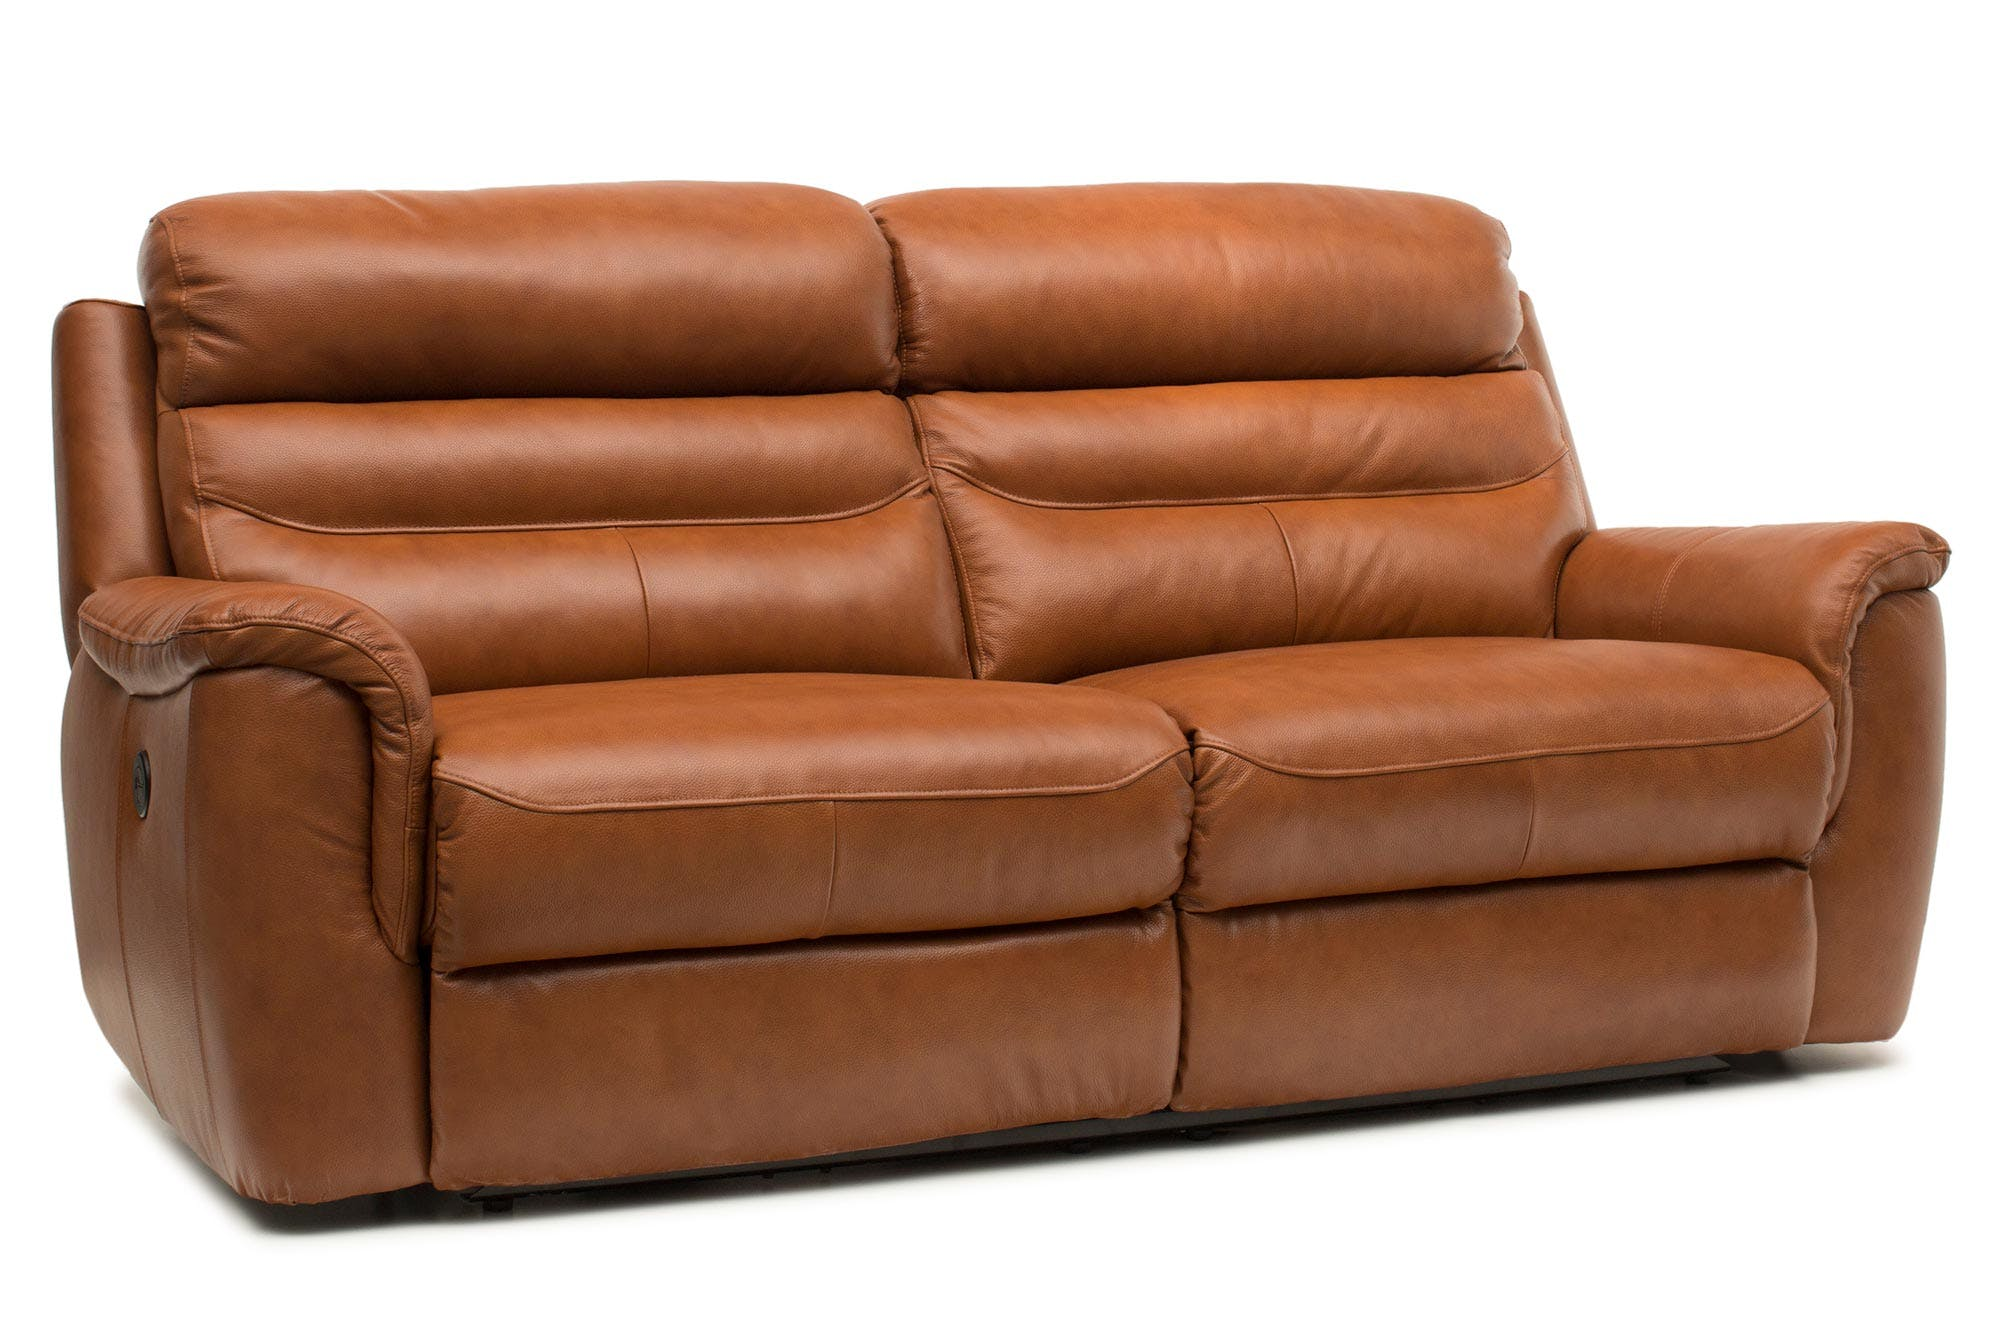 How To Remove Back Of Electric Recliner Sofa Baci Living